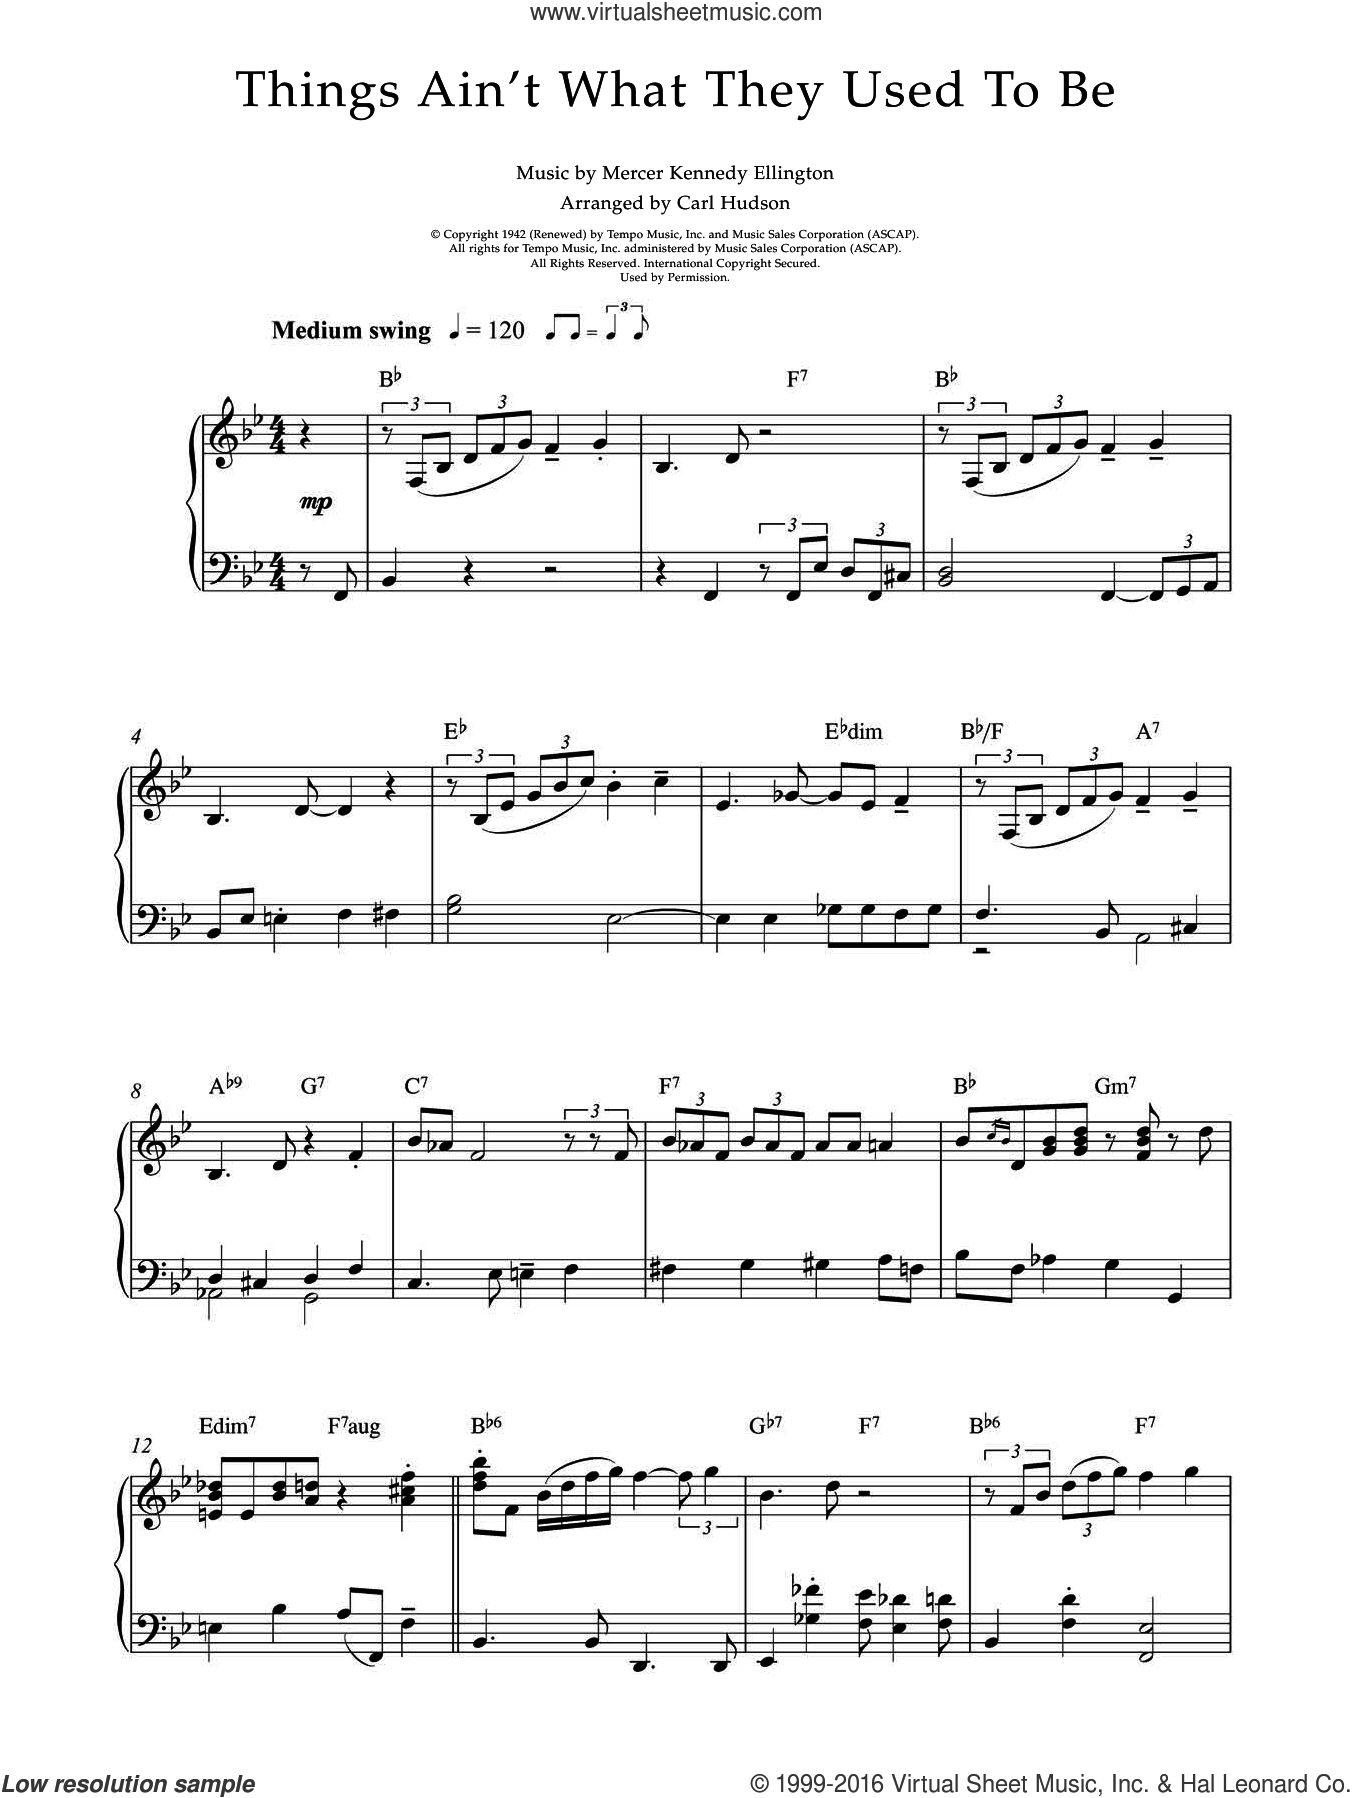 Things Ain't What They Used To Be sheet music for piano solo by Earl Hines and Mercer Ellington, intermediate skill level